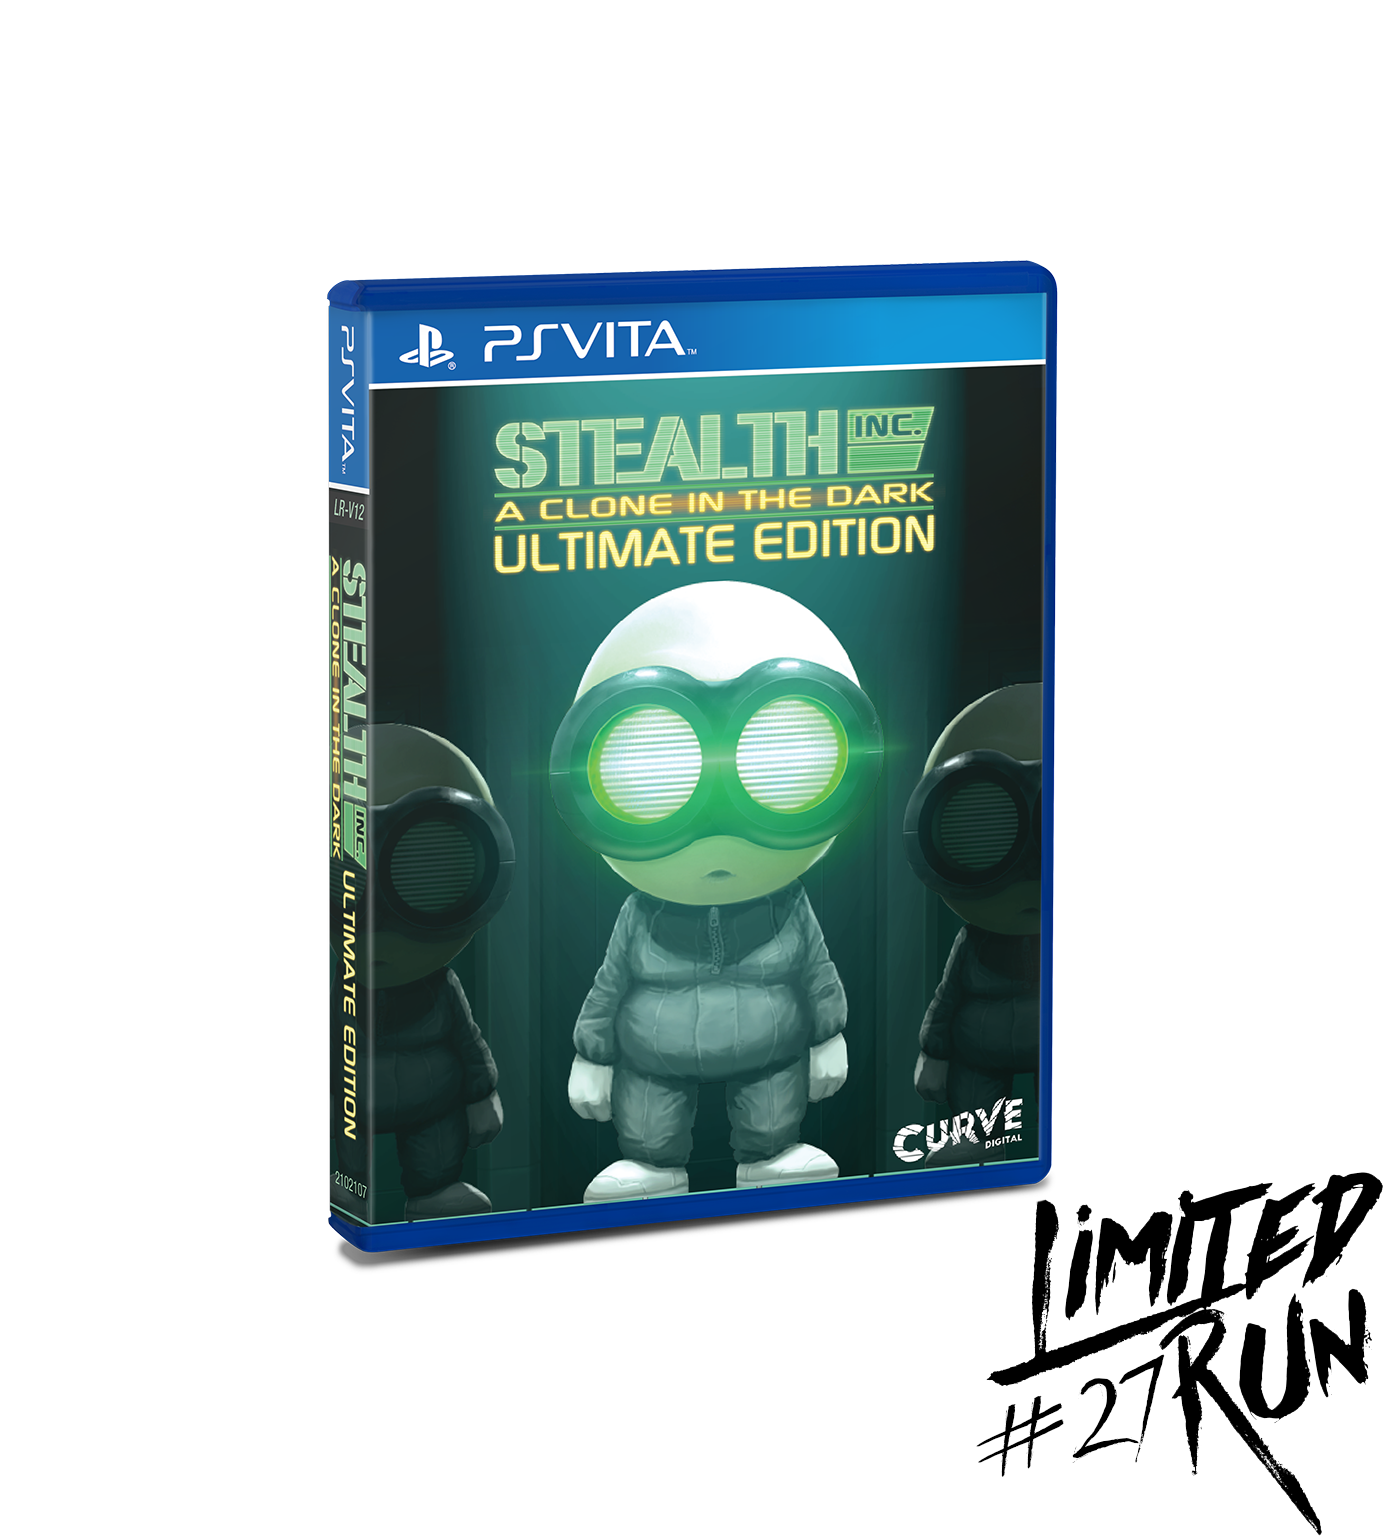 Image result for LIMITED RUN #27: STEALTH INC. ULTIMATE EDITION